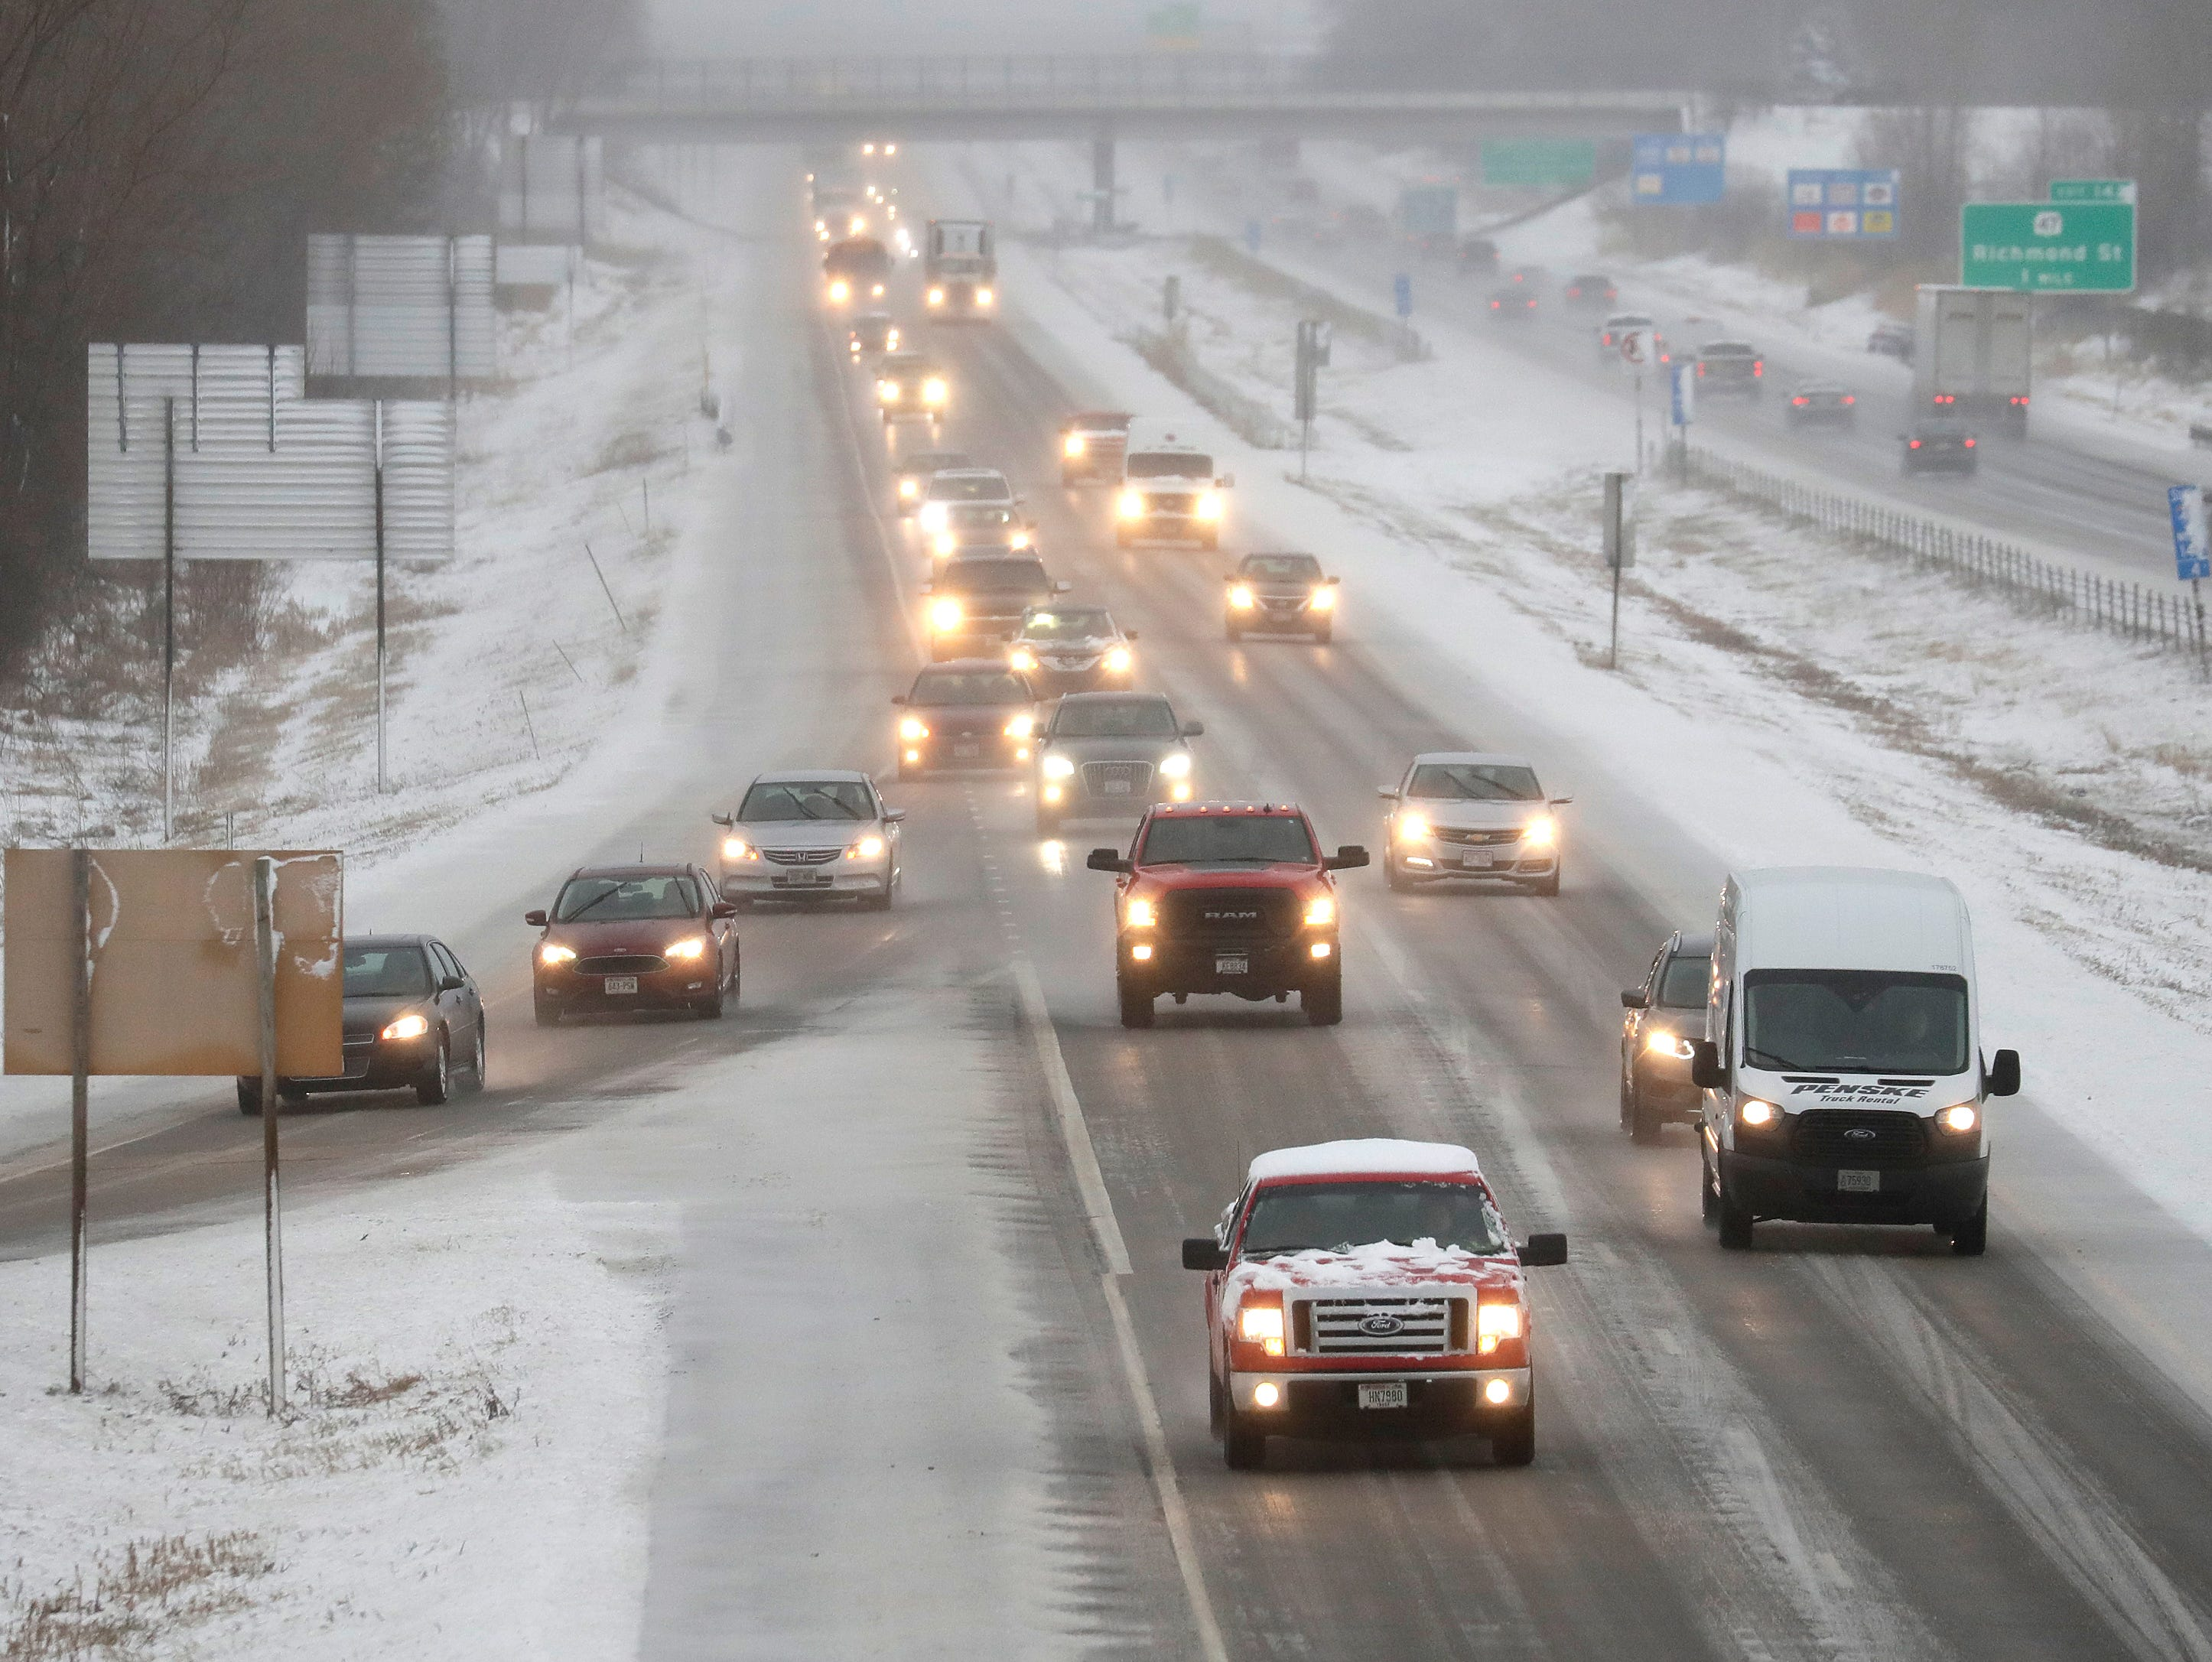 Traffic moves slowly along northbound on I-41 during a spring snow storm Thursday, April 11, 2019, in Appleton, Wis. Dan Powers/USA TODAY NETWORK-Wisconsin